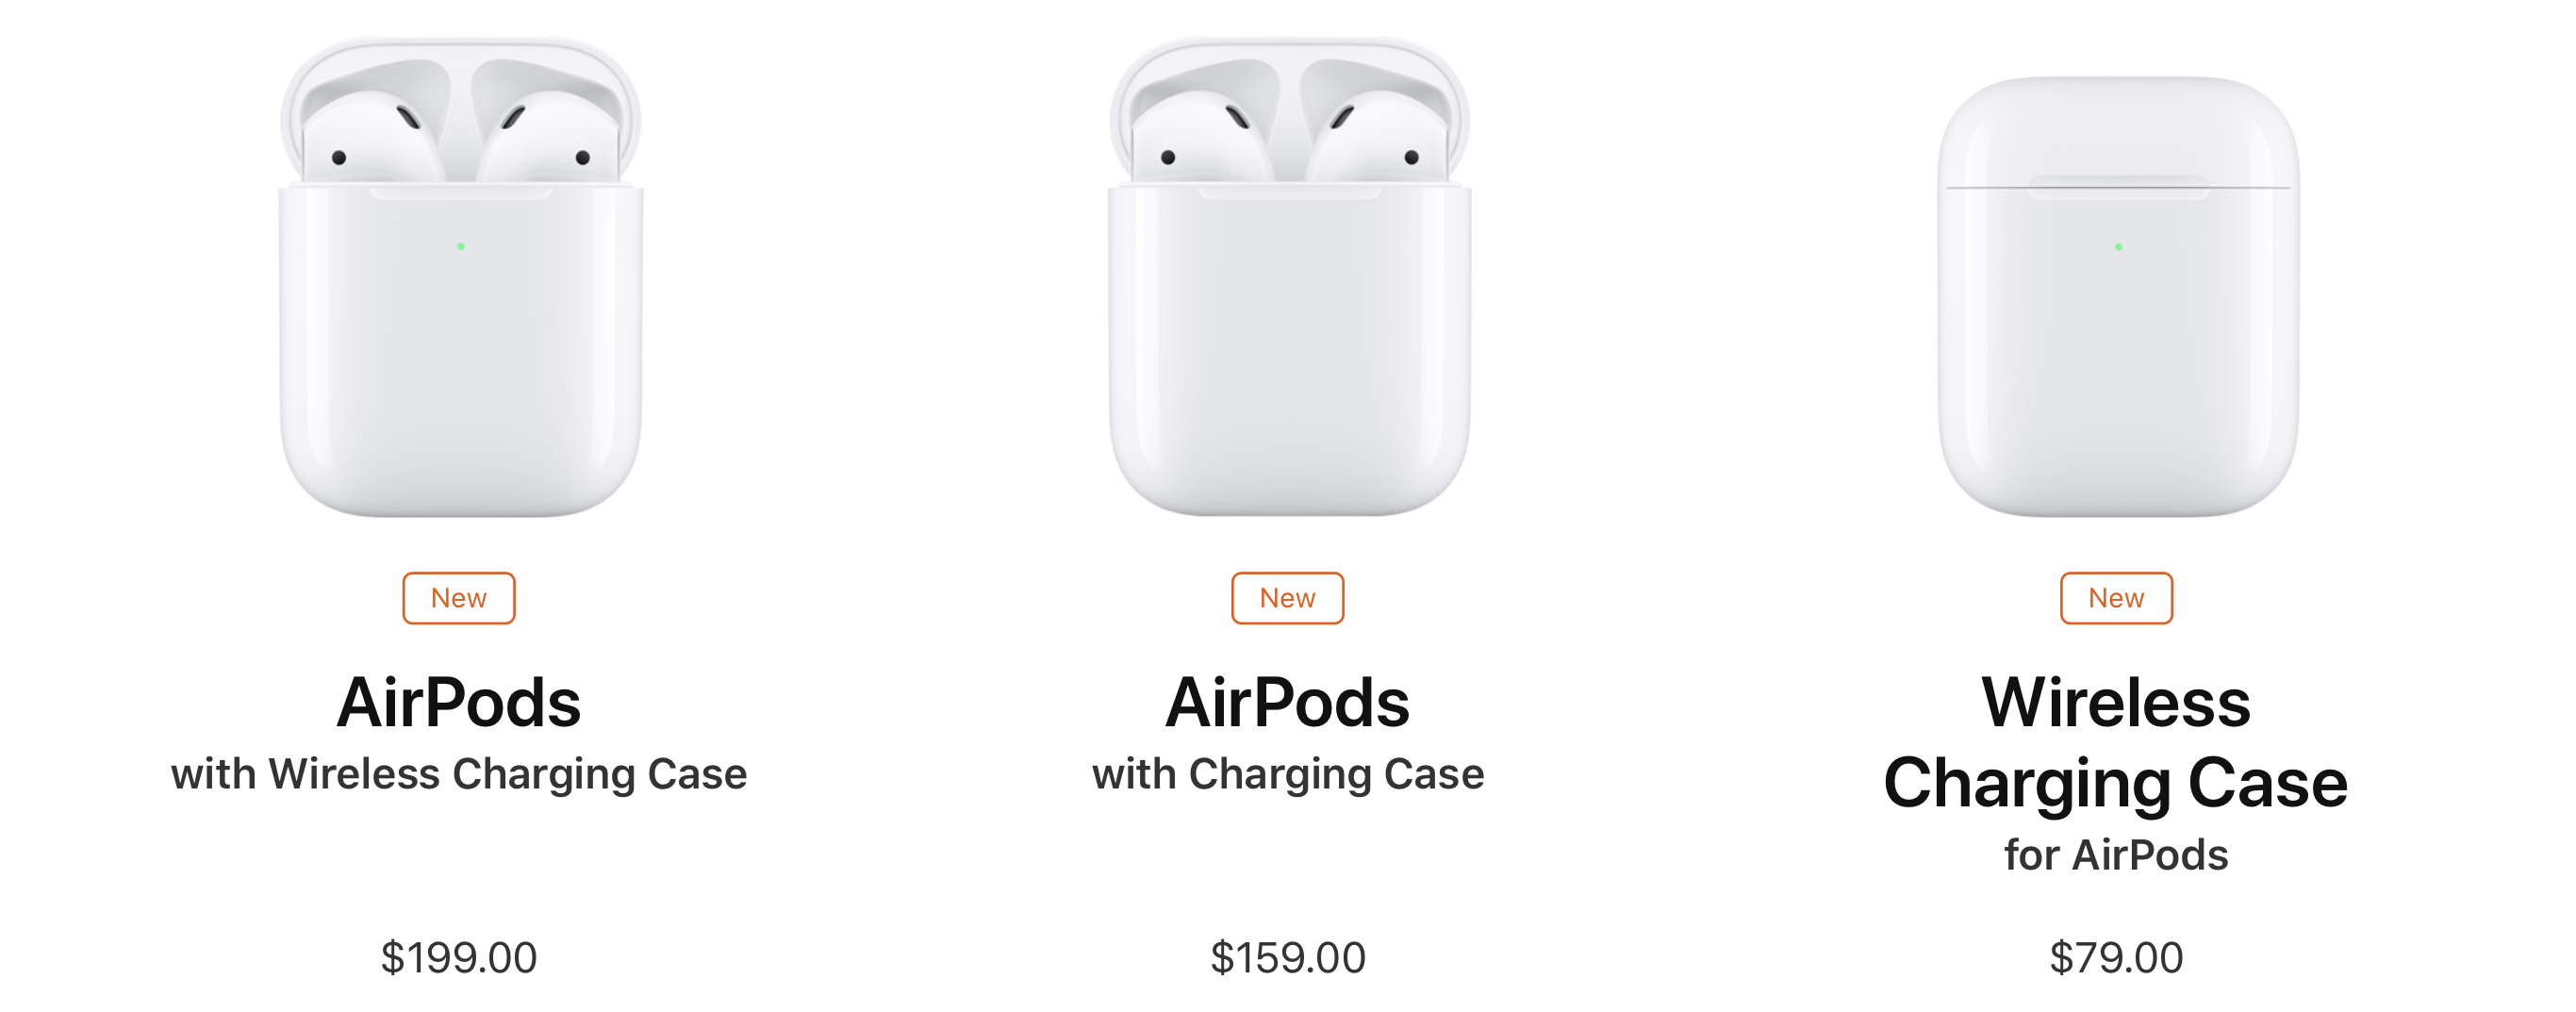 Purchase options for the second-generation AirPods.